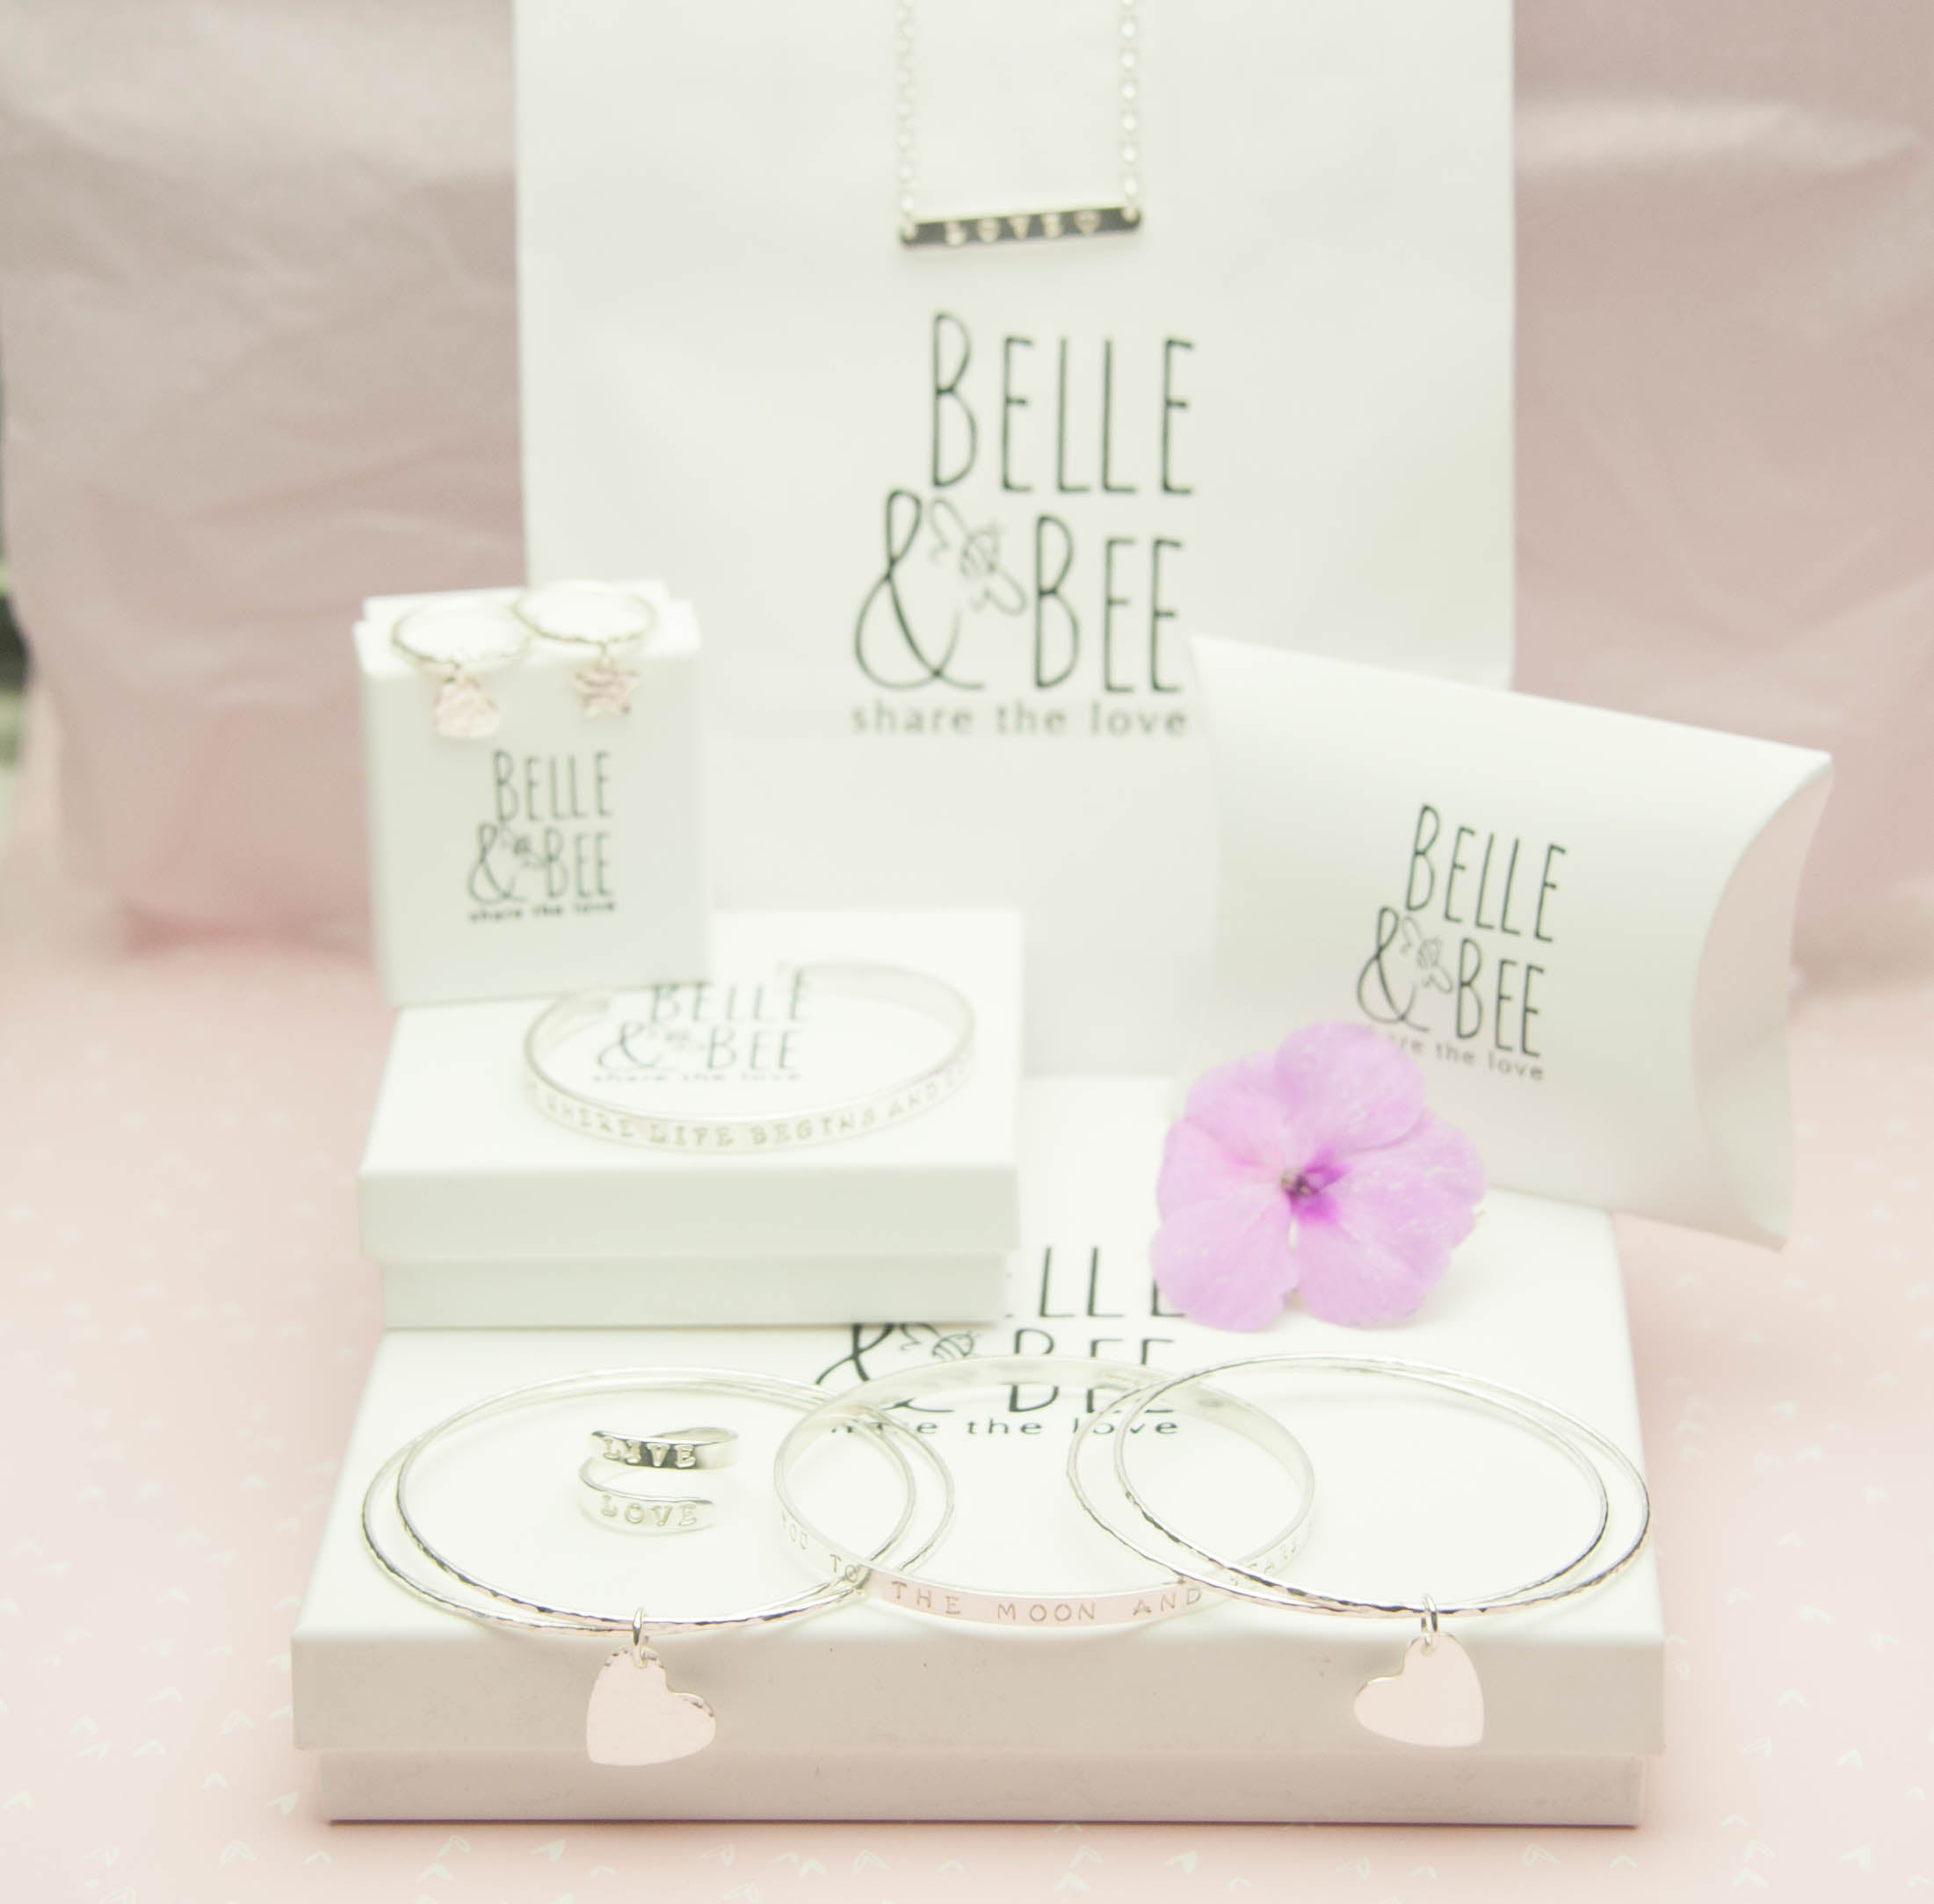 Belle & Bee packaging